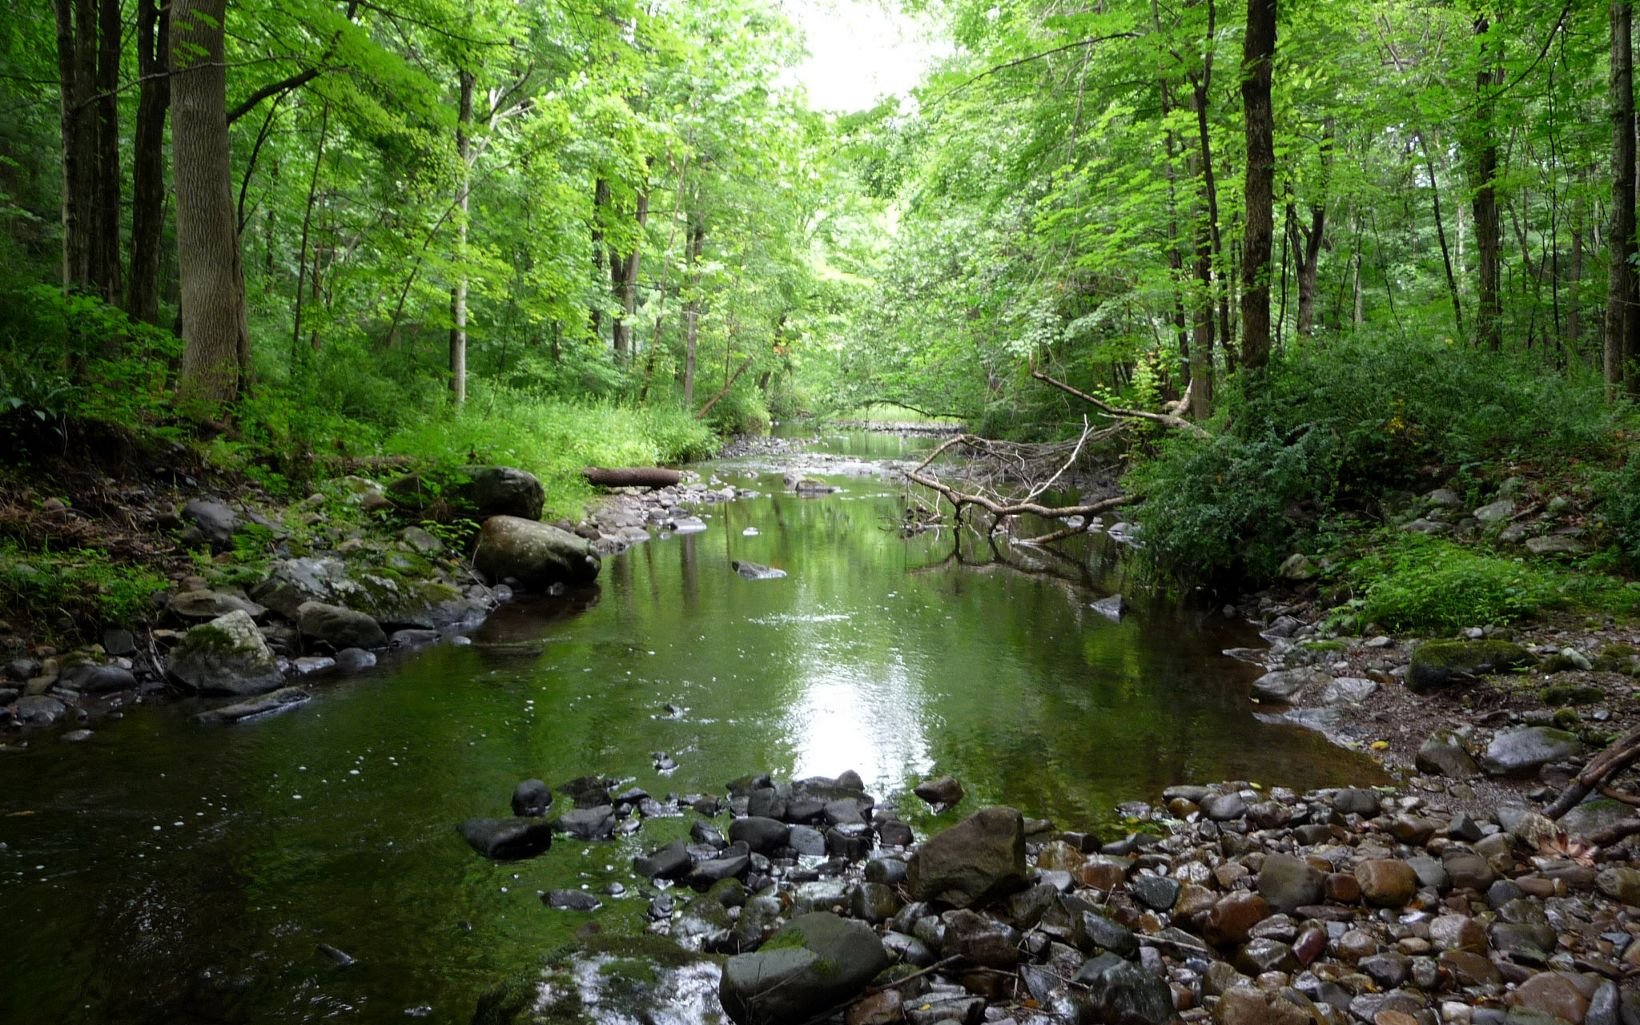 This densely-forested preserve protects streams of near pristine water quality.